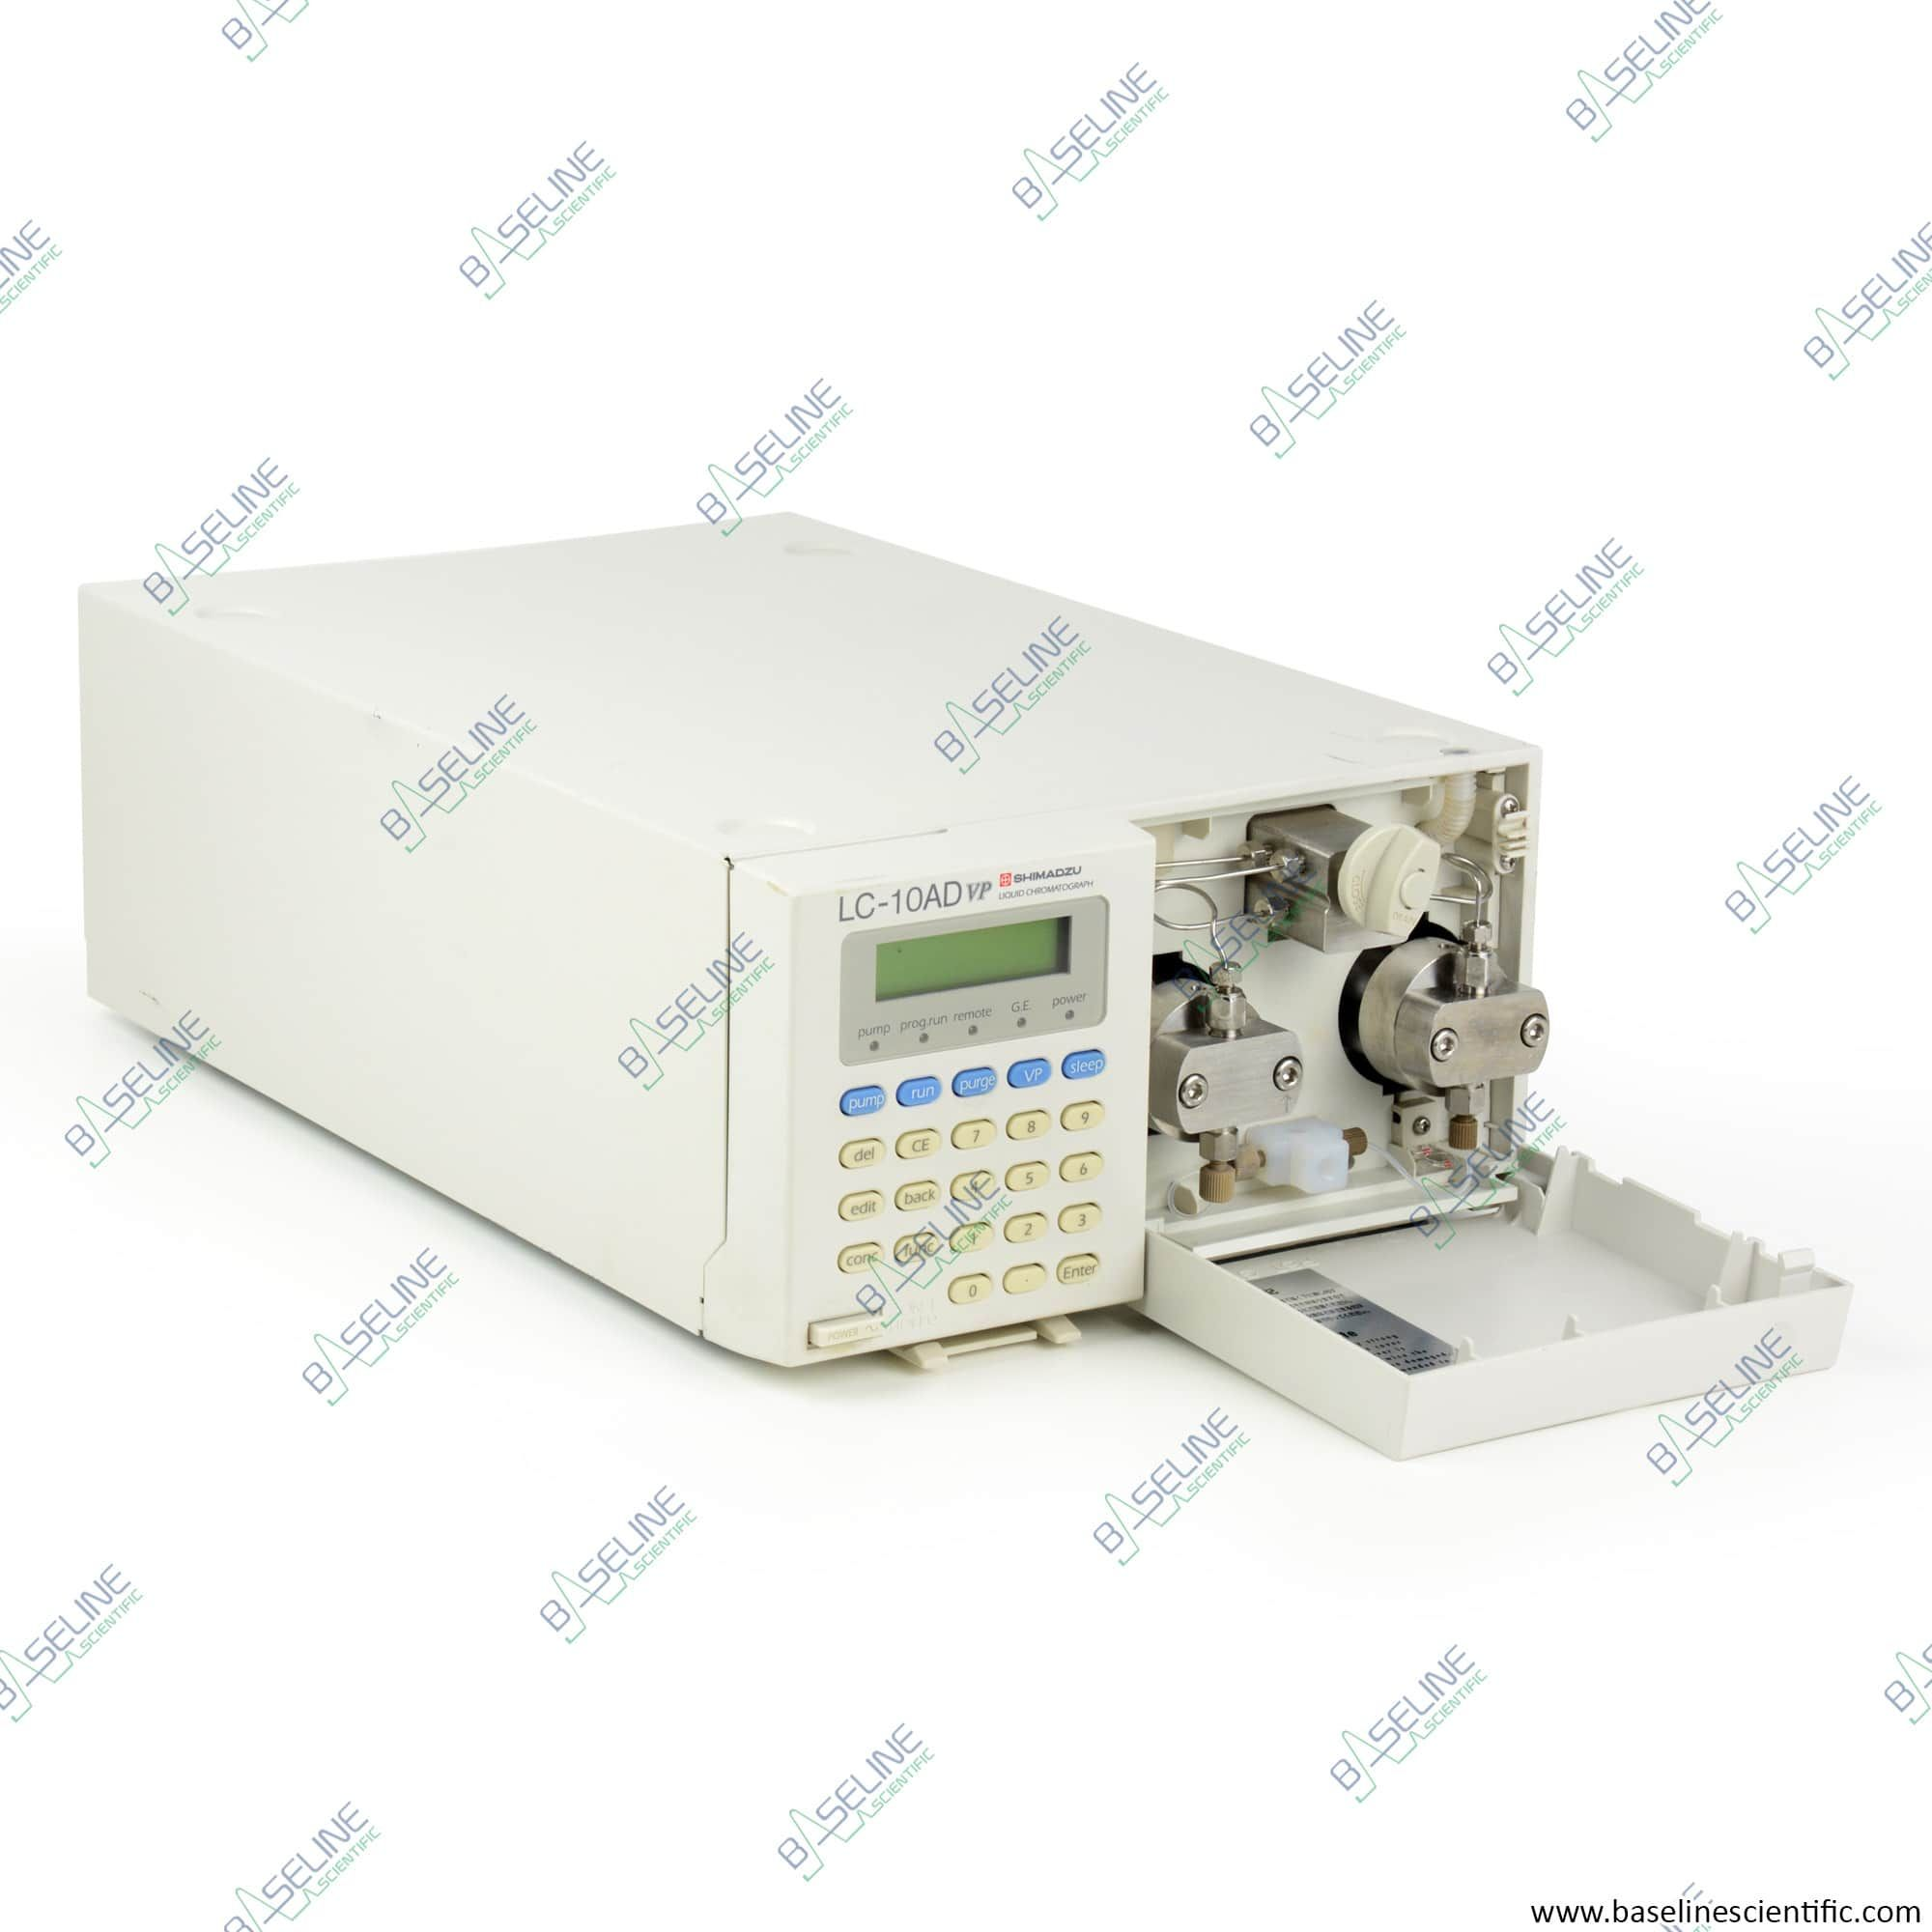 Refurbished Shimadzu LC-10AD VP HPLC Pump with ONE YEAR WARRANTY